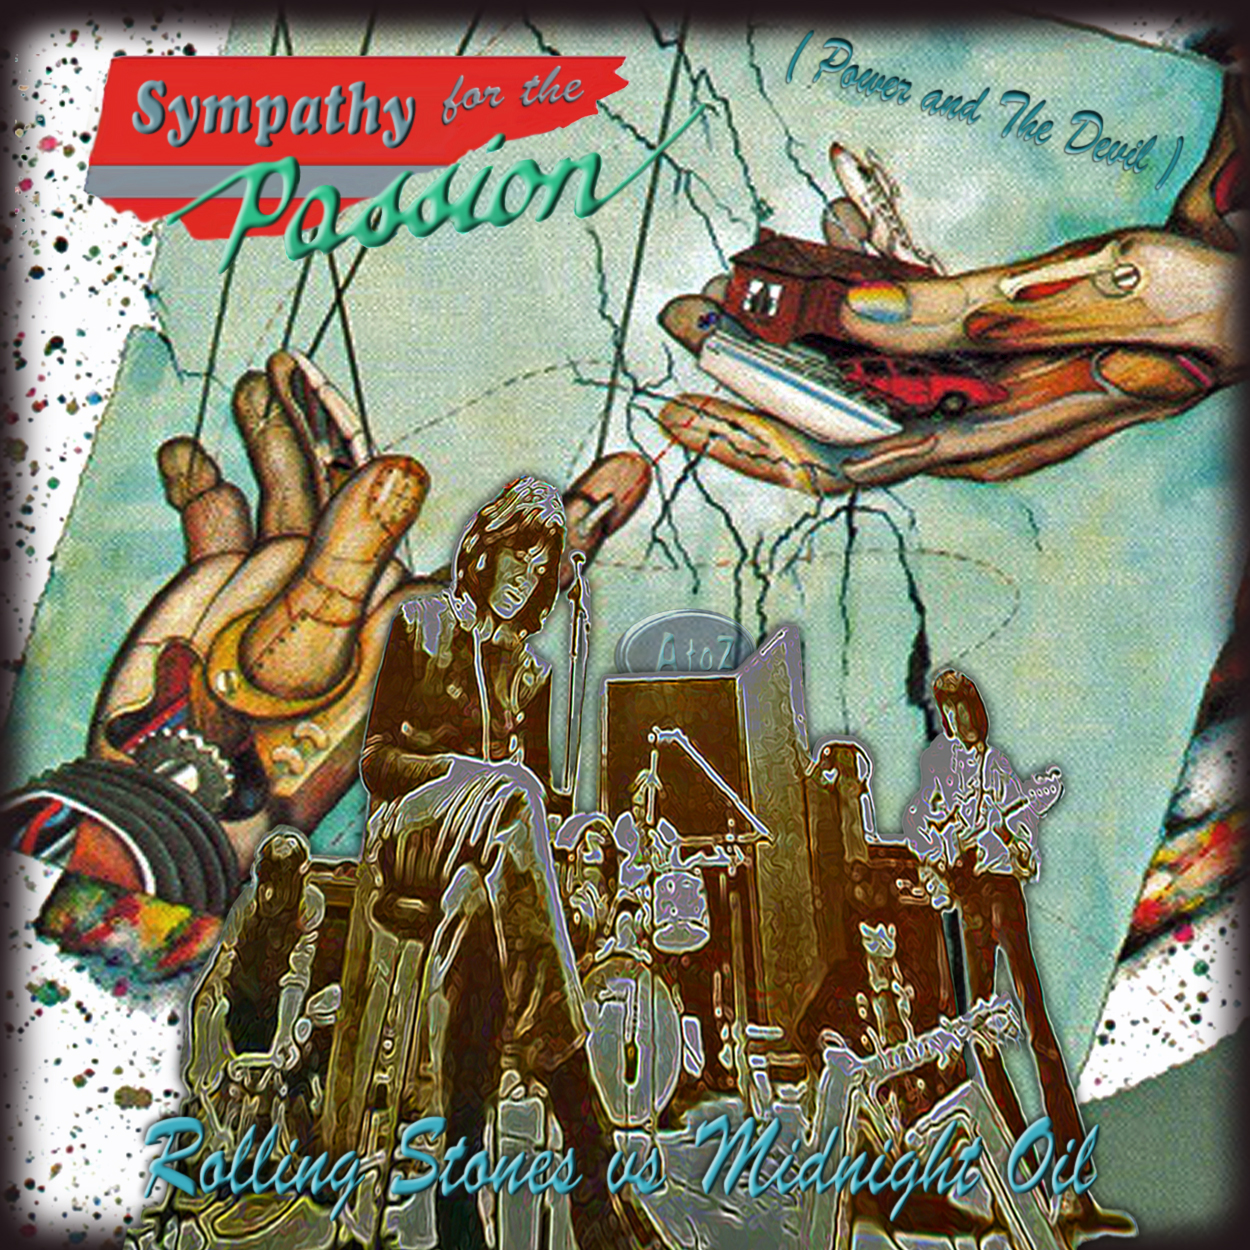 Sympathy For The Passion  ( Power and The Devil ) (The Rolling Stones vs Midnight Oil)